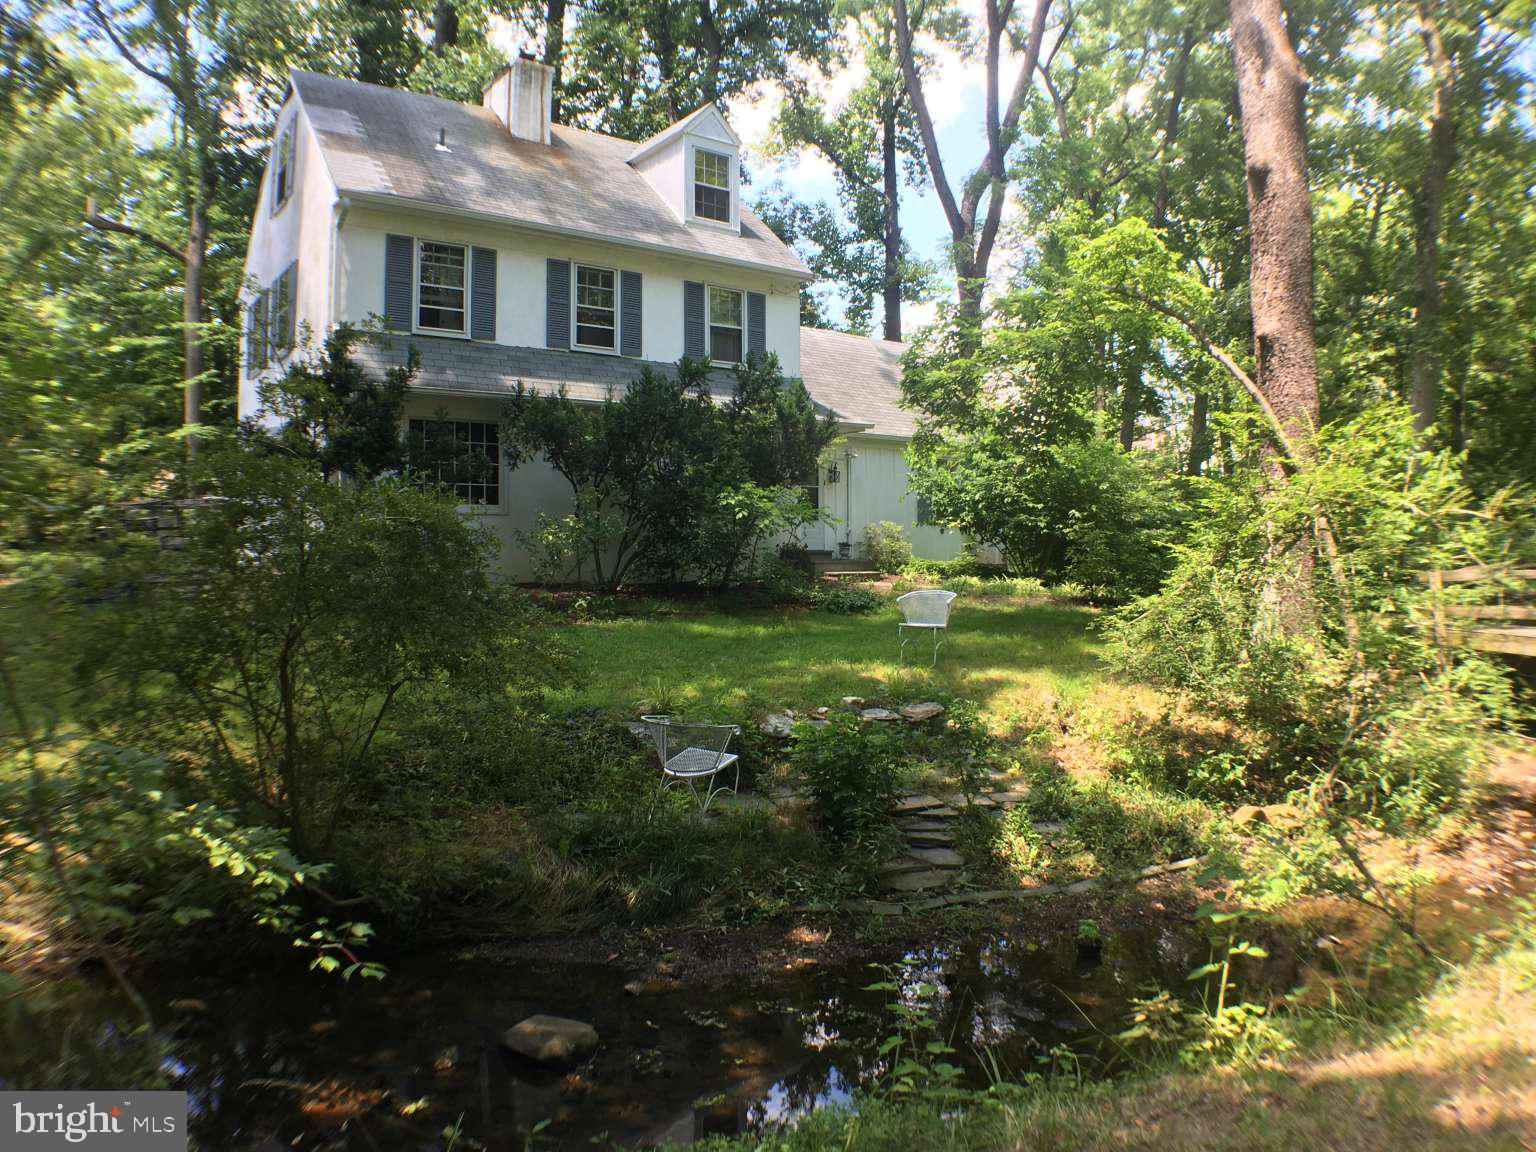 This family home was built in 1960 by noted Main Line Builder Bob McElroy. A farm house style Chester County home on a large five-eighth acre lot, it is move in ready with room for your style and changes. A private woodland setting offers 360 degrees of beautiful views out every window. The highlight of the property is sparkling Julep Run Creek, right in the front yard. No other property in the area boasts this highly unusual and captivating feature. You will be gazing into shimmering water every day while you sip your morning coffee in the dining room. IMPORTANT--no flood damage to this house EVER. We have not experienced an issue because we do not have a basement. The dining room boasts a polished brick floor and ceiling beams. Two substantial brick fireplaces will warm you with wood burning fires in fall and winter, one in the living room and one in the dining room. French doors, and authentic windows with real wood mullions grace the architecture. Beautifully refinished hardwood floors throughout the entire house complete this solid, cozy home. Enjoy a kitchen built just three years ago and an an added laundry room. The attic off the master bedroom could be converted to a formal changing room, studio or office. A family room with closet downstairs could easily be a fifth bedroom - bathroom right around the corner. Lastly, a bridge spans the stream (accommodating over 14,000 pounds of weight) so you can park in the front or rear of the property. This family home gave us 60 years of cherished memories with nature all around. Located in the award winning Tredyffrin-Easttown school district; it is one of a kind.